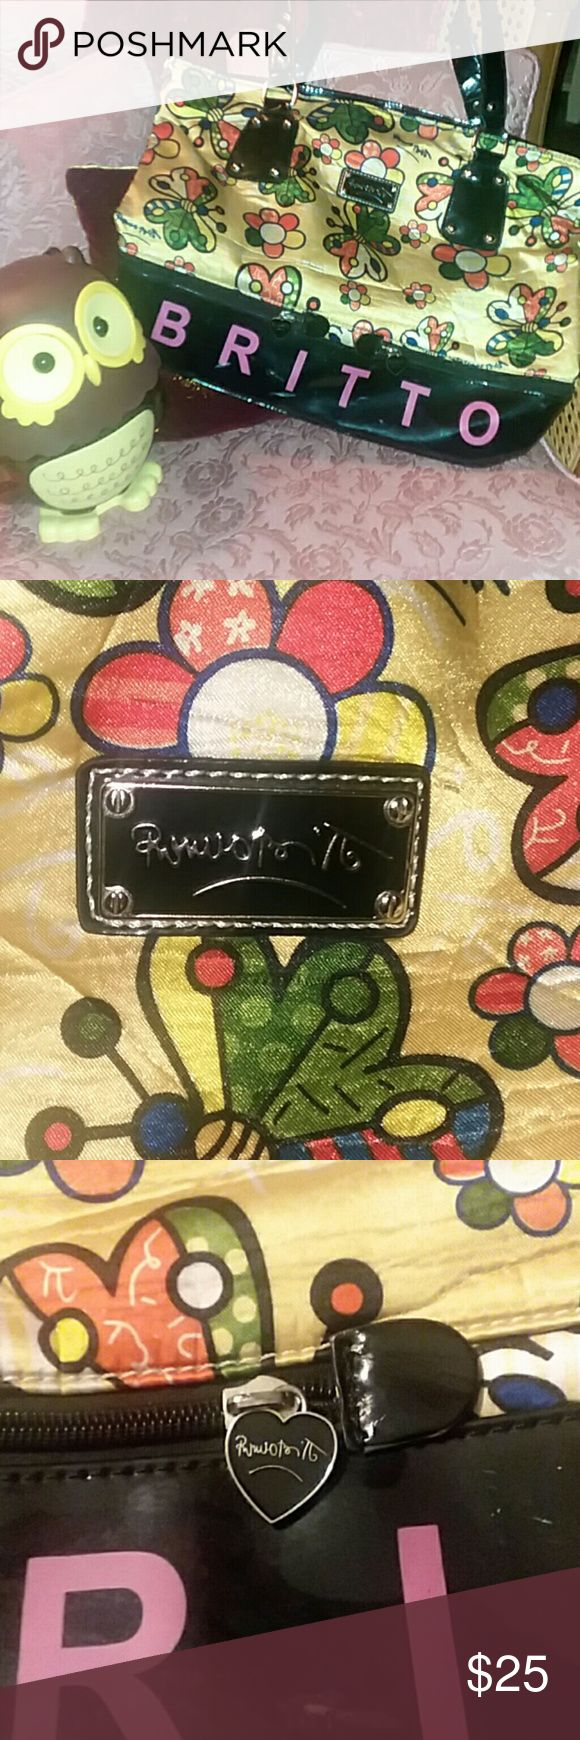 """Ramon Britto Shoulder/Tote Purse This Vintage Multi-Pocket And Made of A Polyester Material Is Quite Versatile and Roomy for All Your """"Woman Stuff""""  Bright Colors to Cheer You Up.  Has Scratches And Flaw Due To Wear ☺. Overall Nice and Still Lots of Woman Use.  USED Ramon Britto Bags Shoulder Bags"""